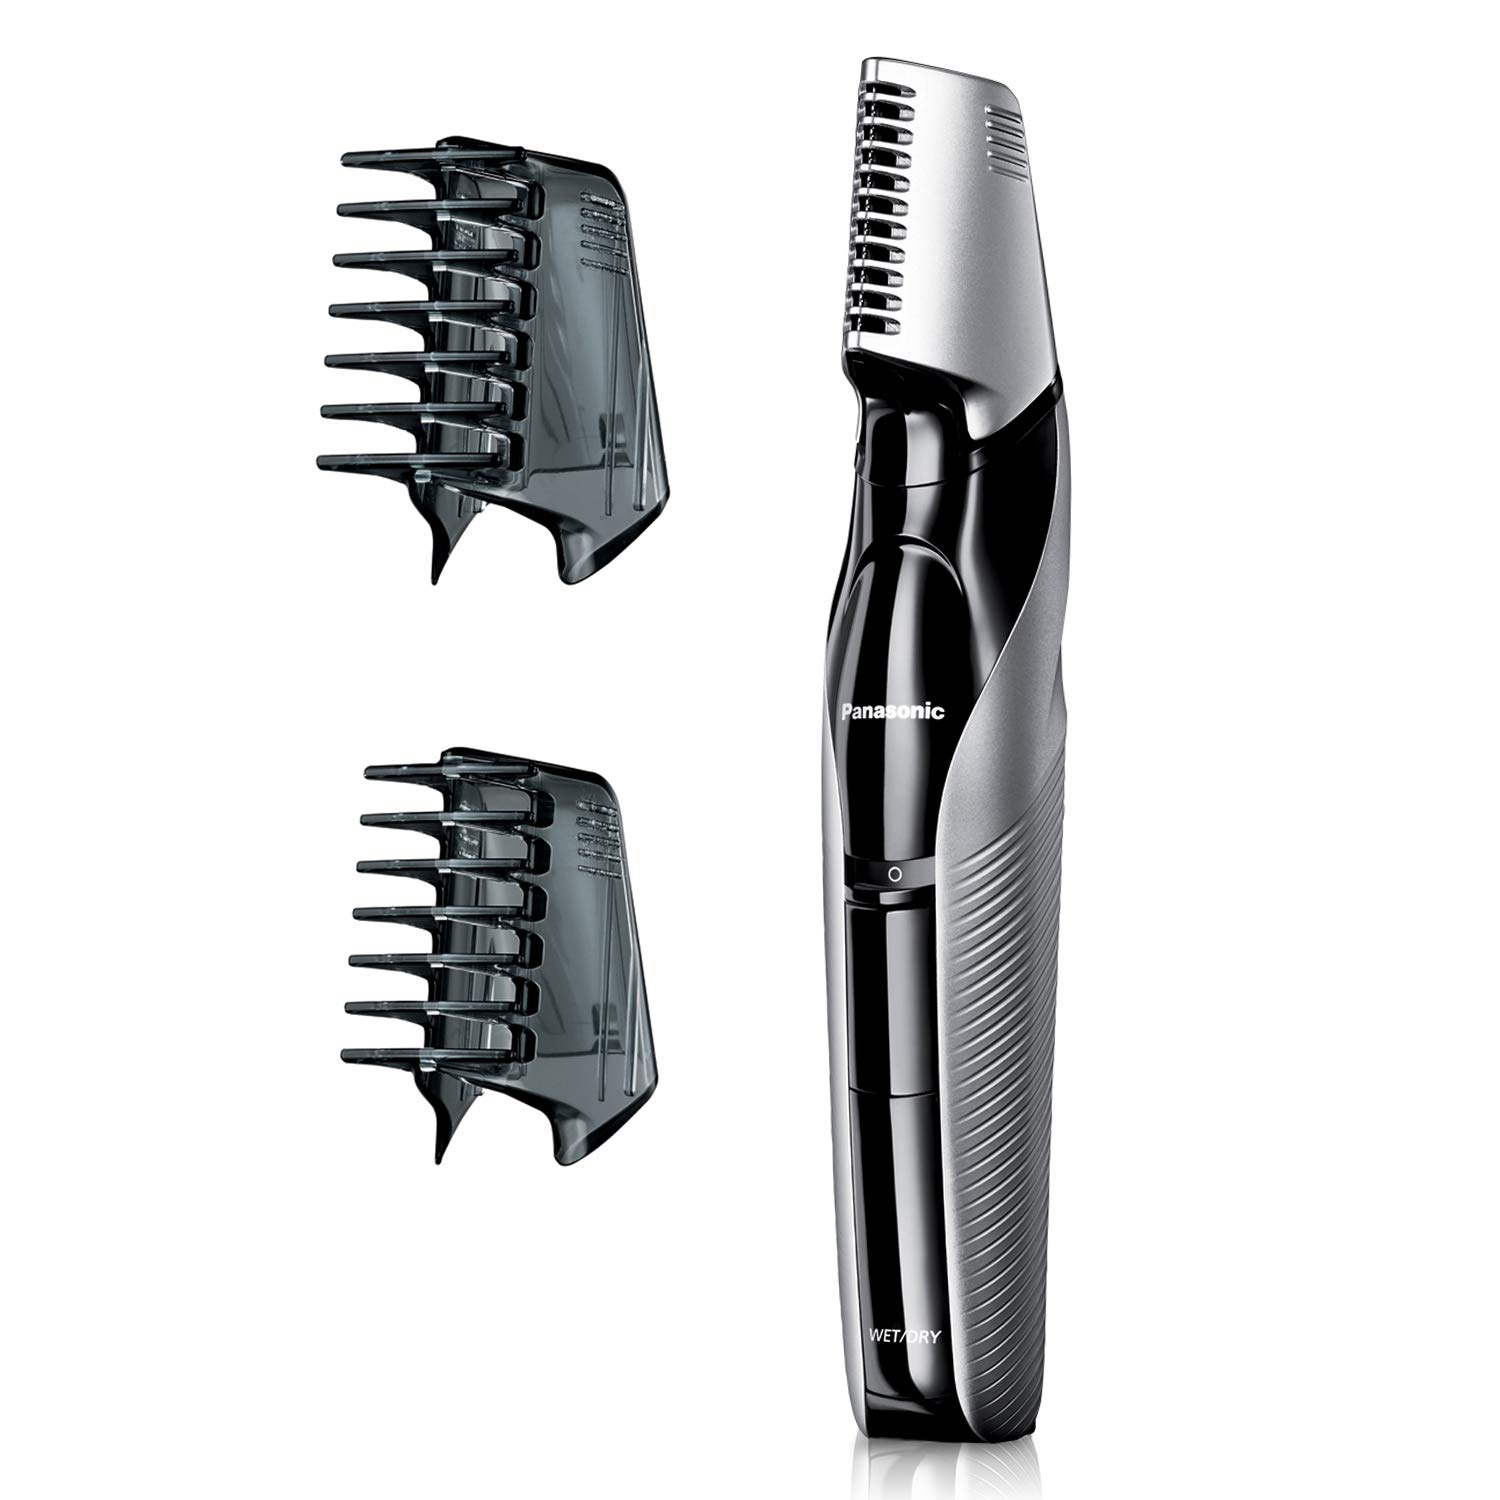 Panasonic Electric Body Groomer and Trimmer with comb attachments